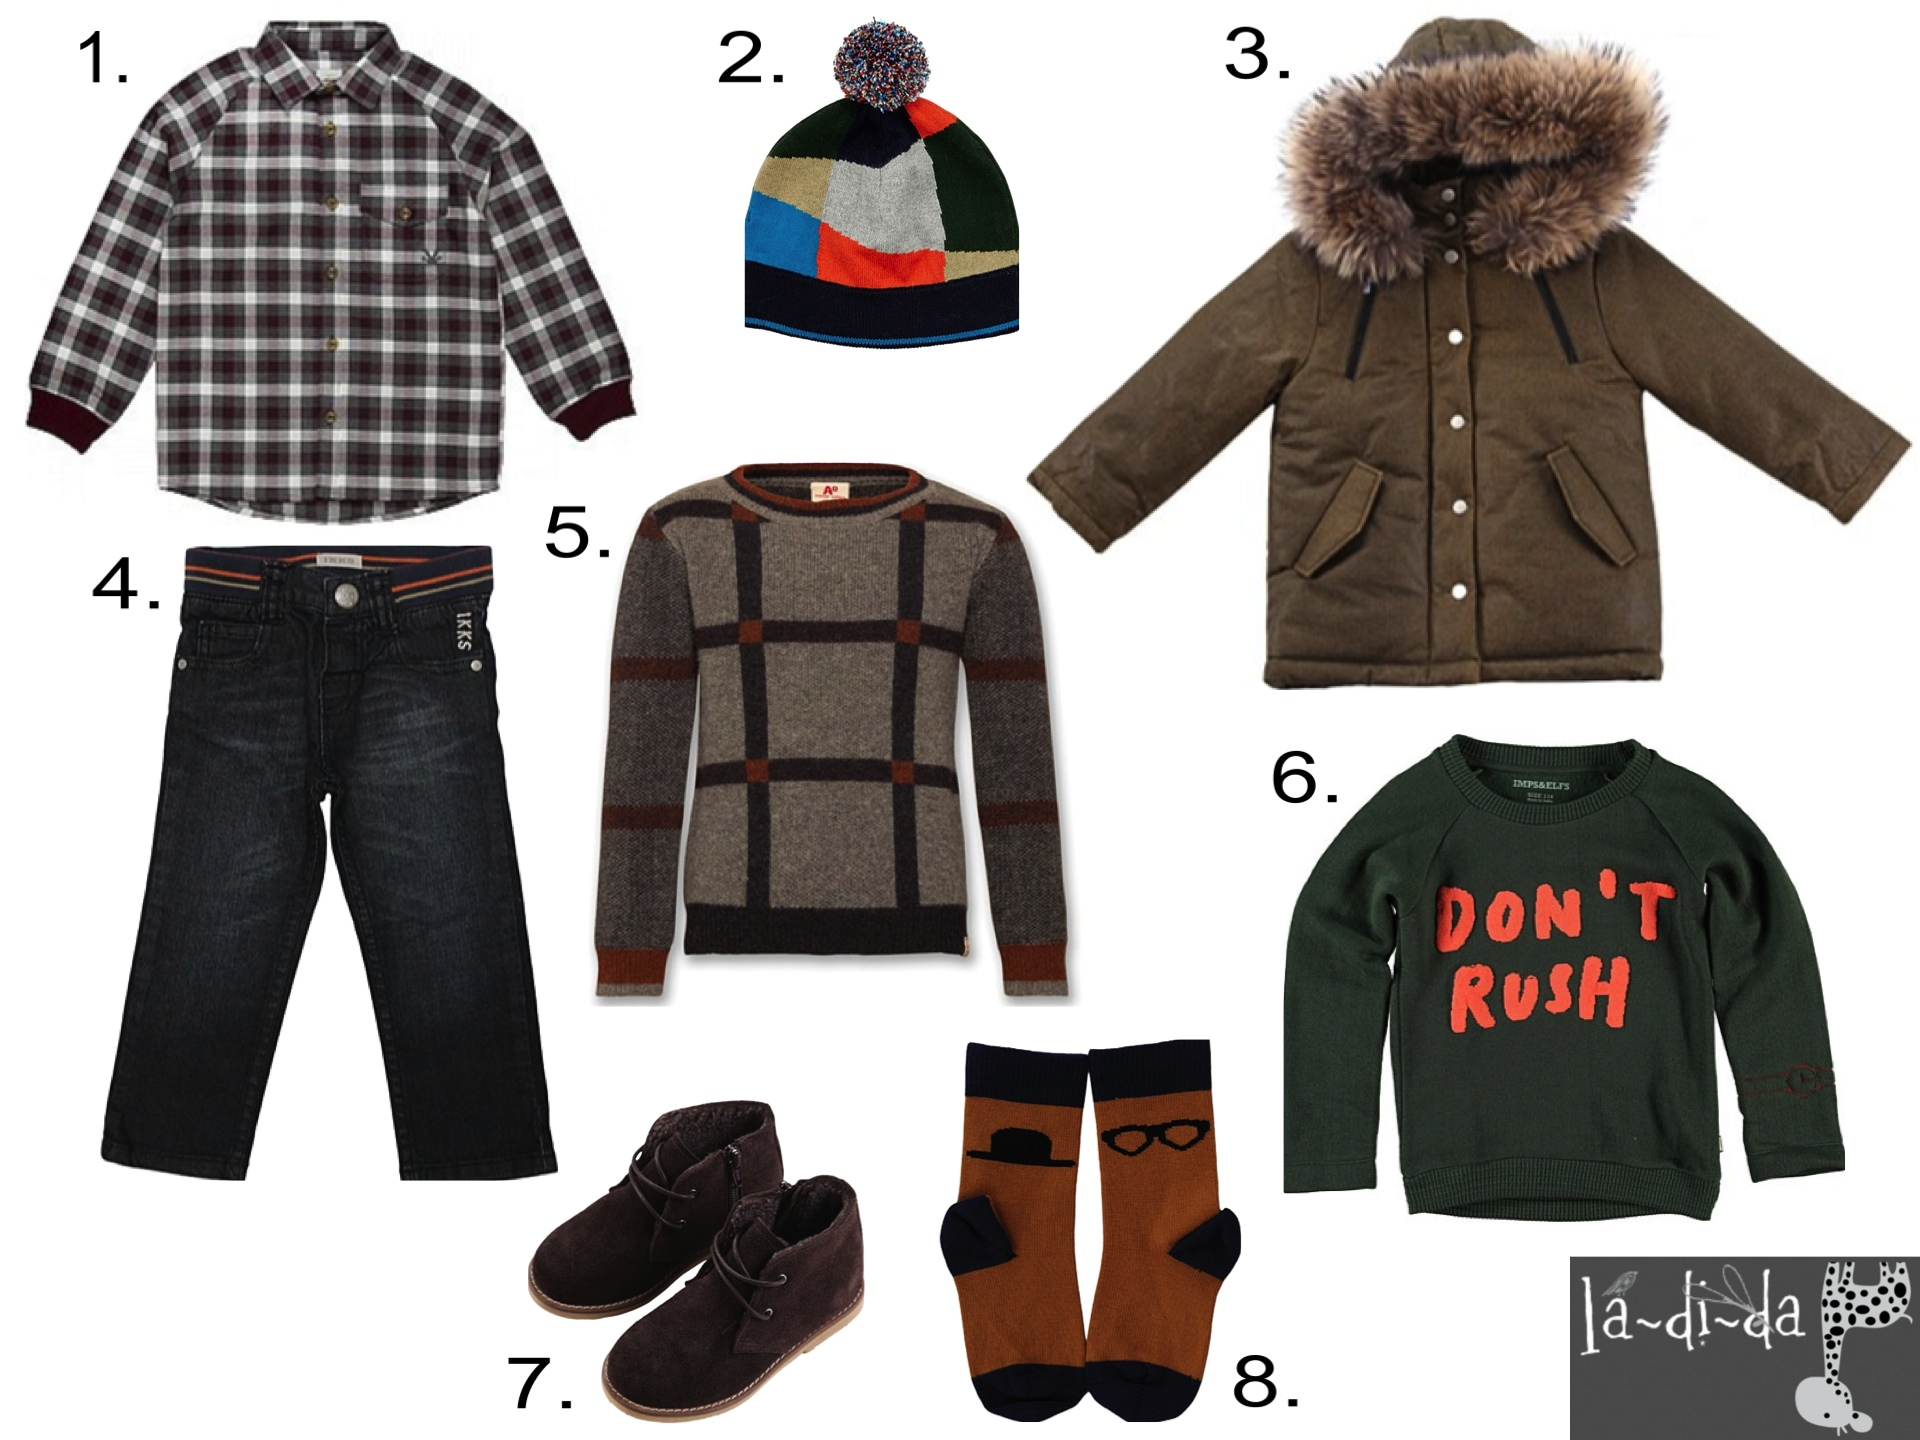 """Boys' Fall Favorites from LaDiDa  1.  No Added Check Top  2.  Paul Pom Pom Hat  3.  Anais Puffy Coat  4.  IKKS Jeans  5.  AO Check Sweater  6.   I mps """"Don't Rush"""" Sweats  7.  Anais Bootie  8.  Emile Socks"""